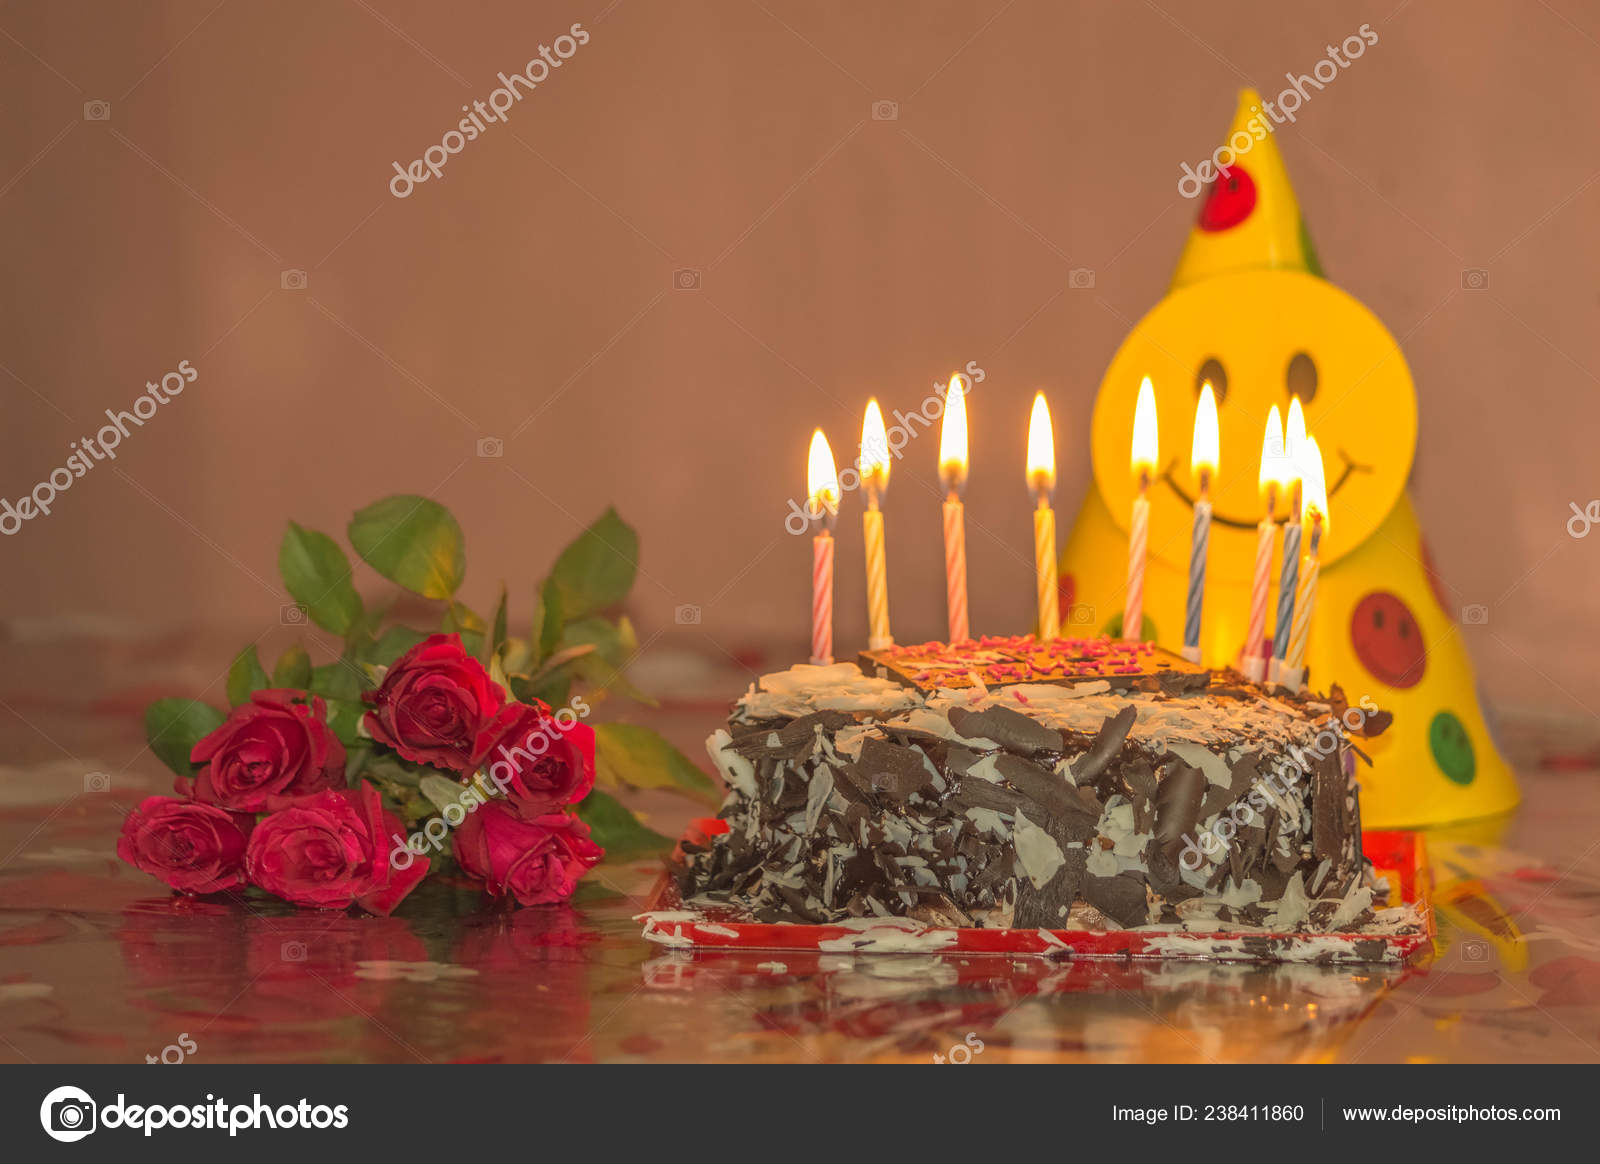 Red Rose Birthday Cakes Chocolate Cake Candles Red Rose Valentines Day Mothers Day Birthday Stock Editorial Photo C Abannerjee 238411860